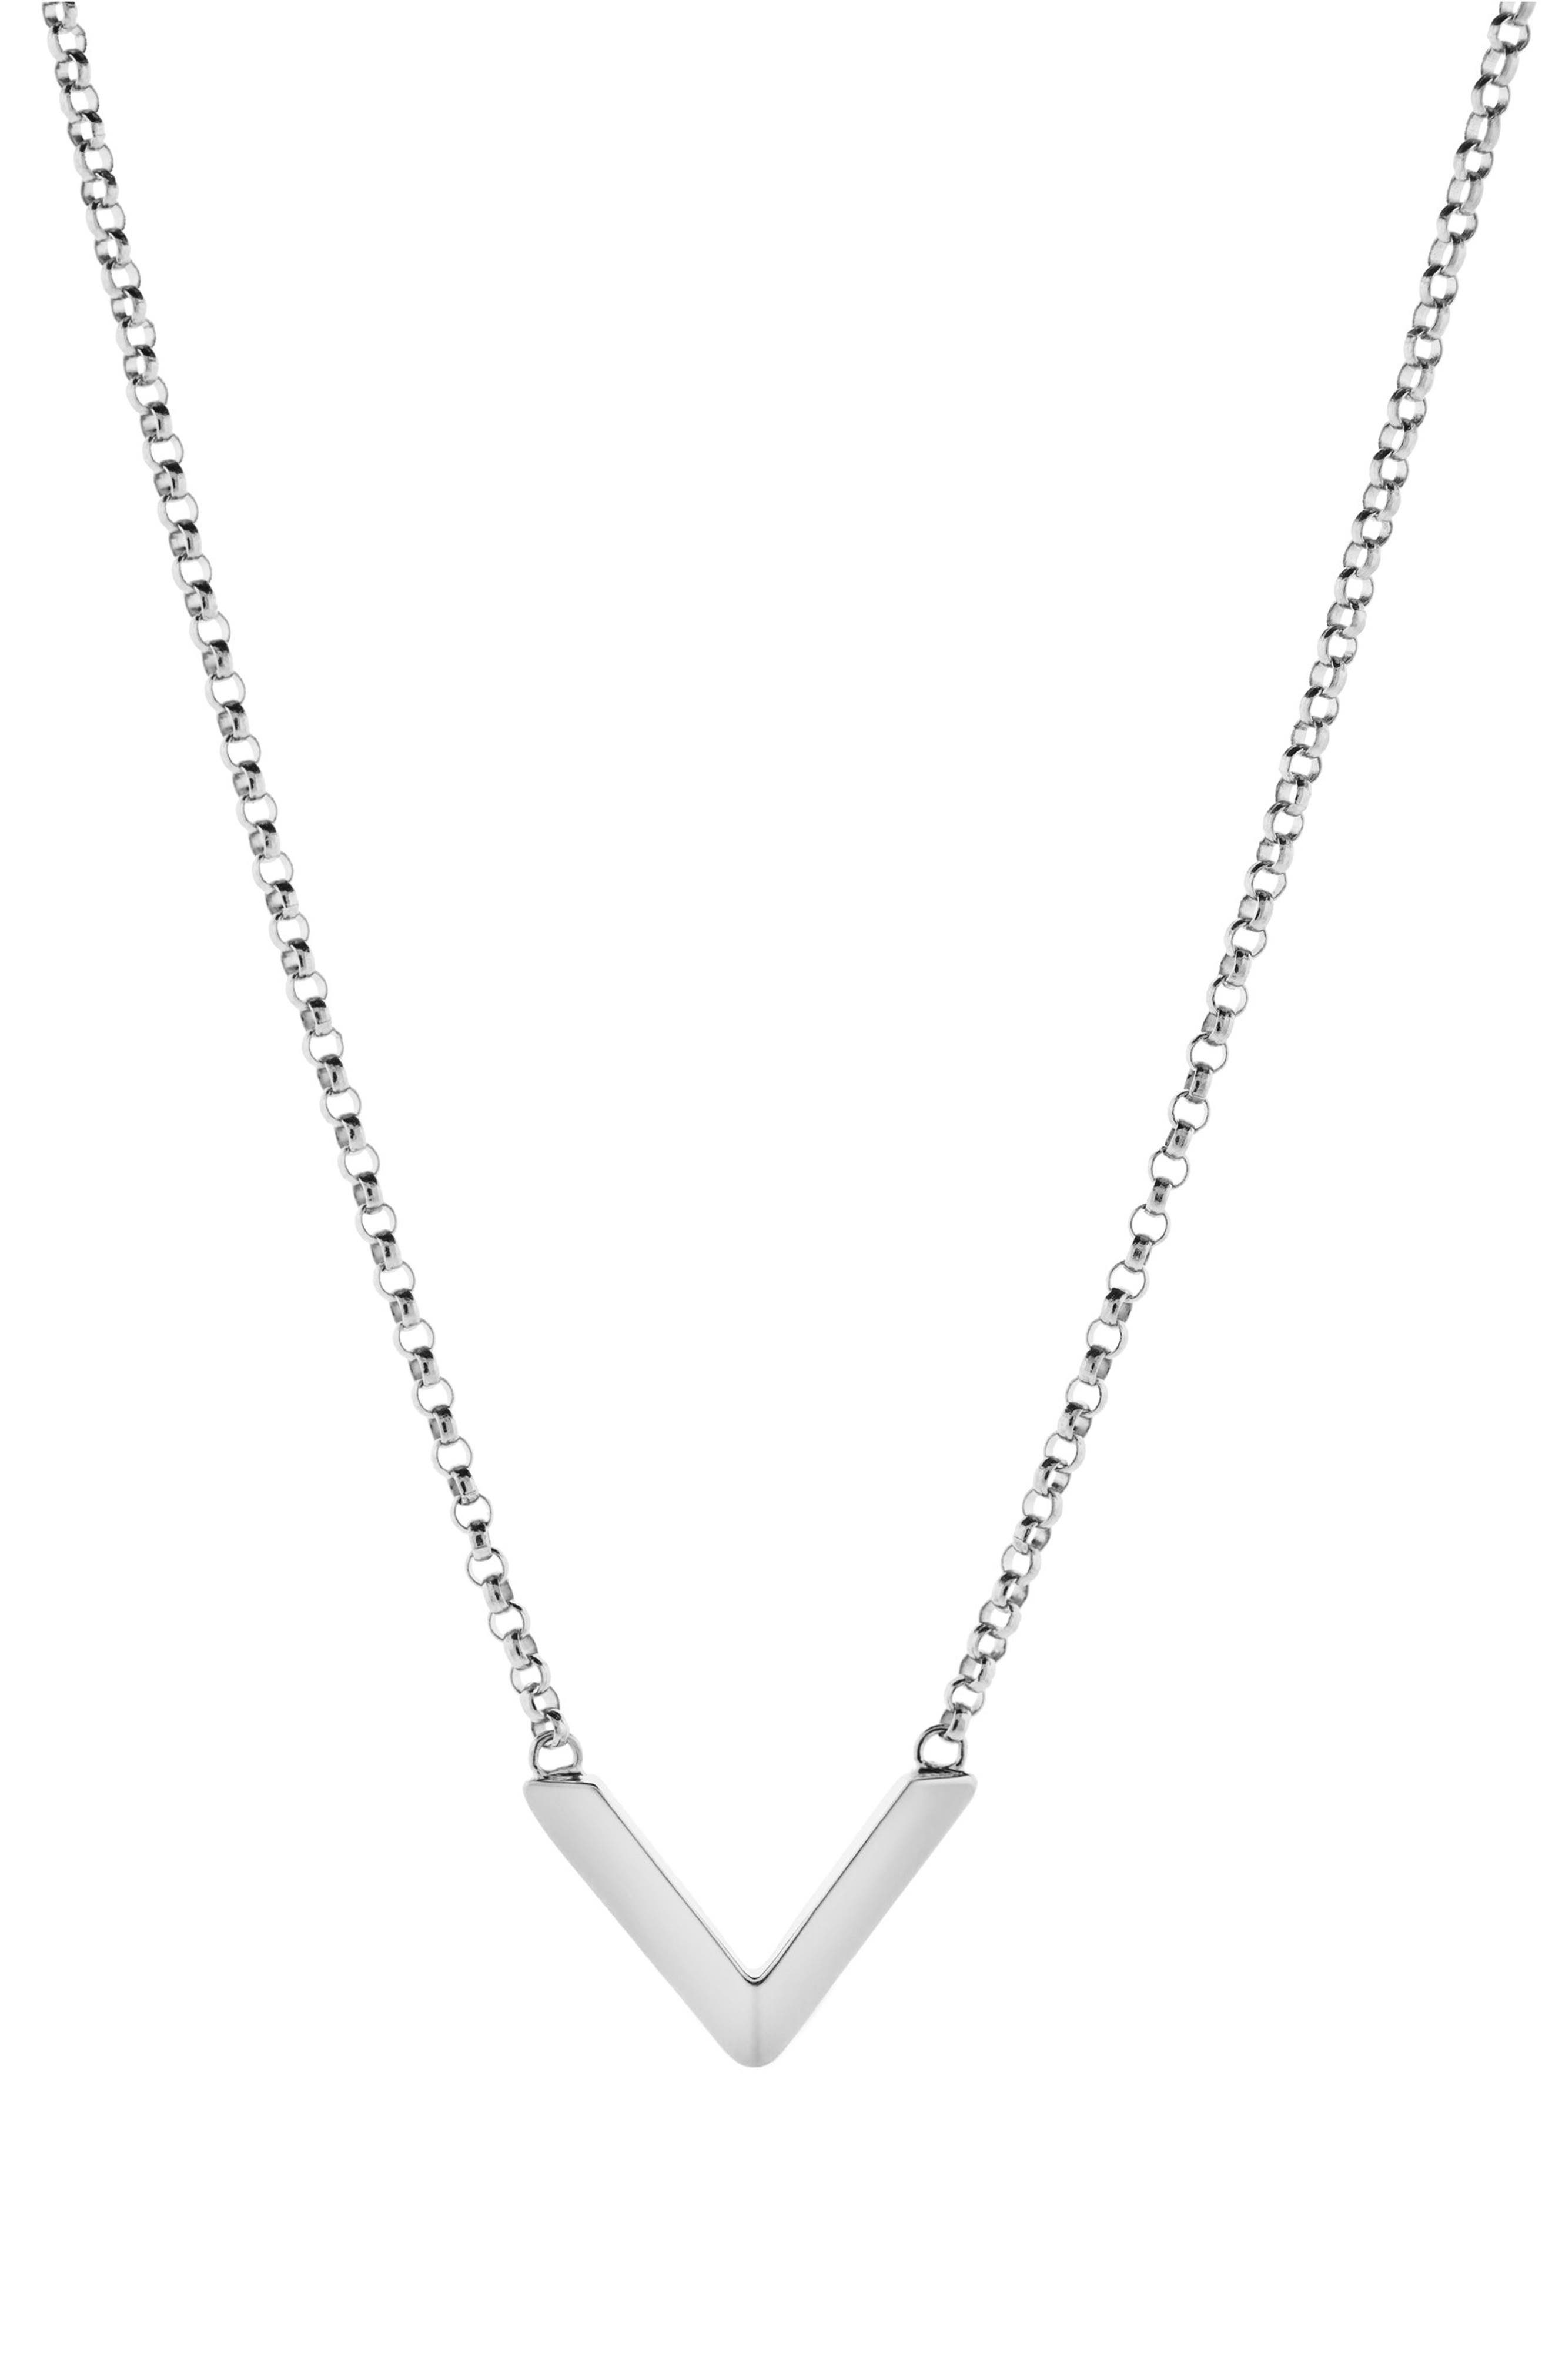 Angular Pendant Necklace,                             Main thumbnail 1, color,                             STERLING SILVER